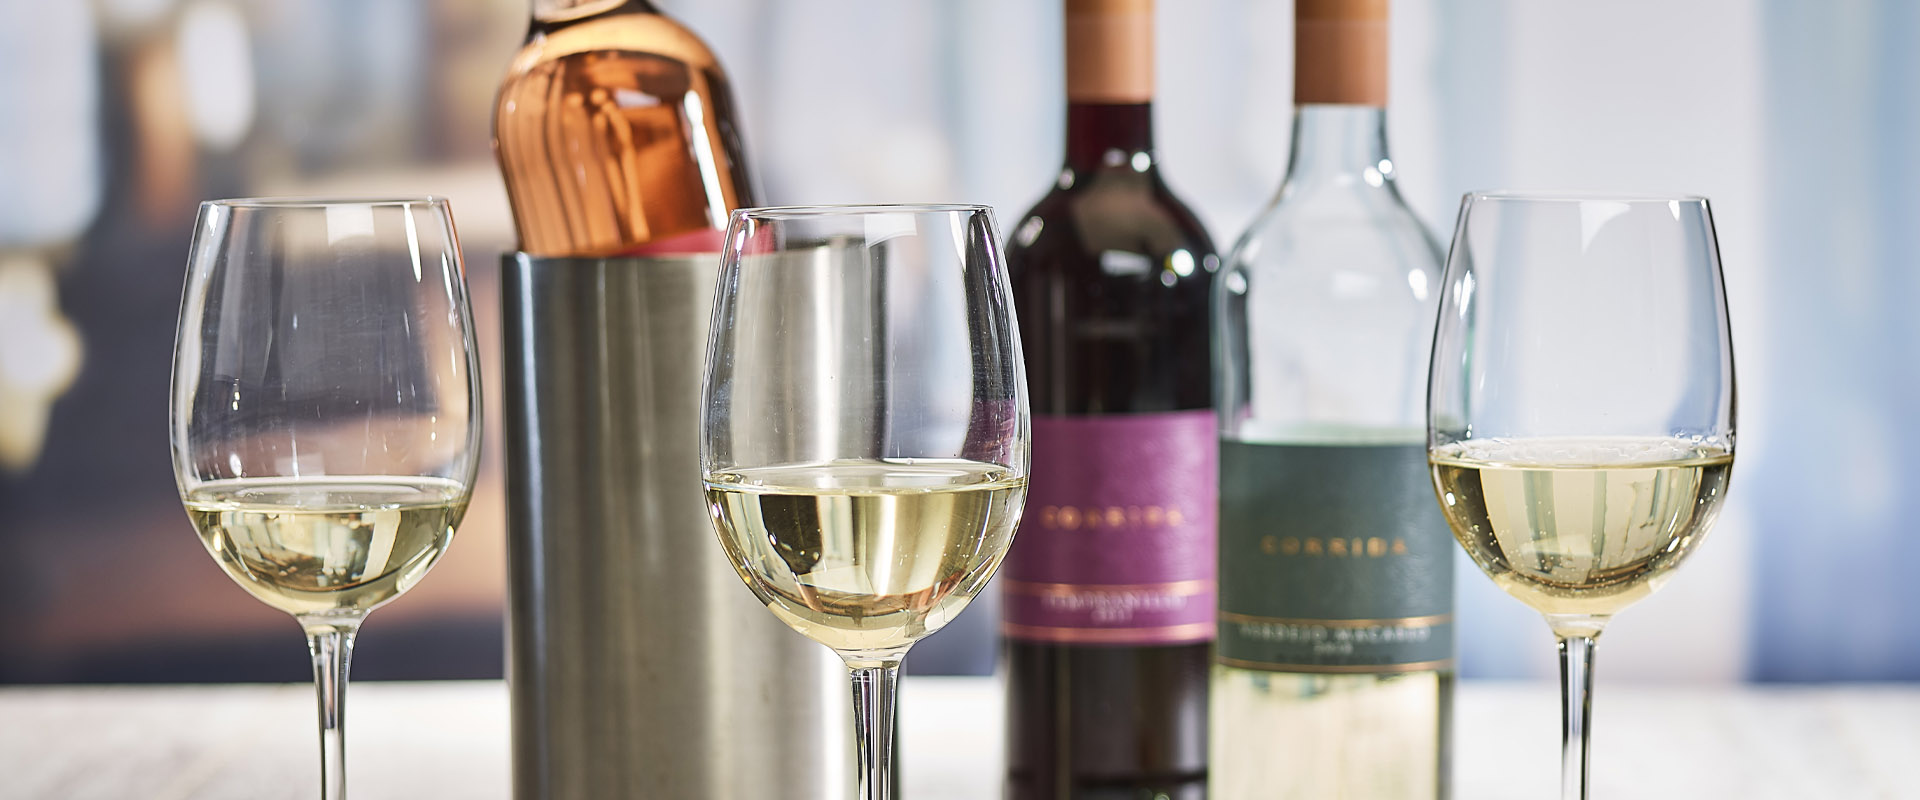 Pre-Pay for Wine this Christmas at The Blind Pig